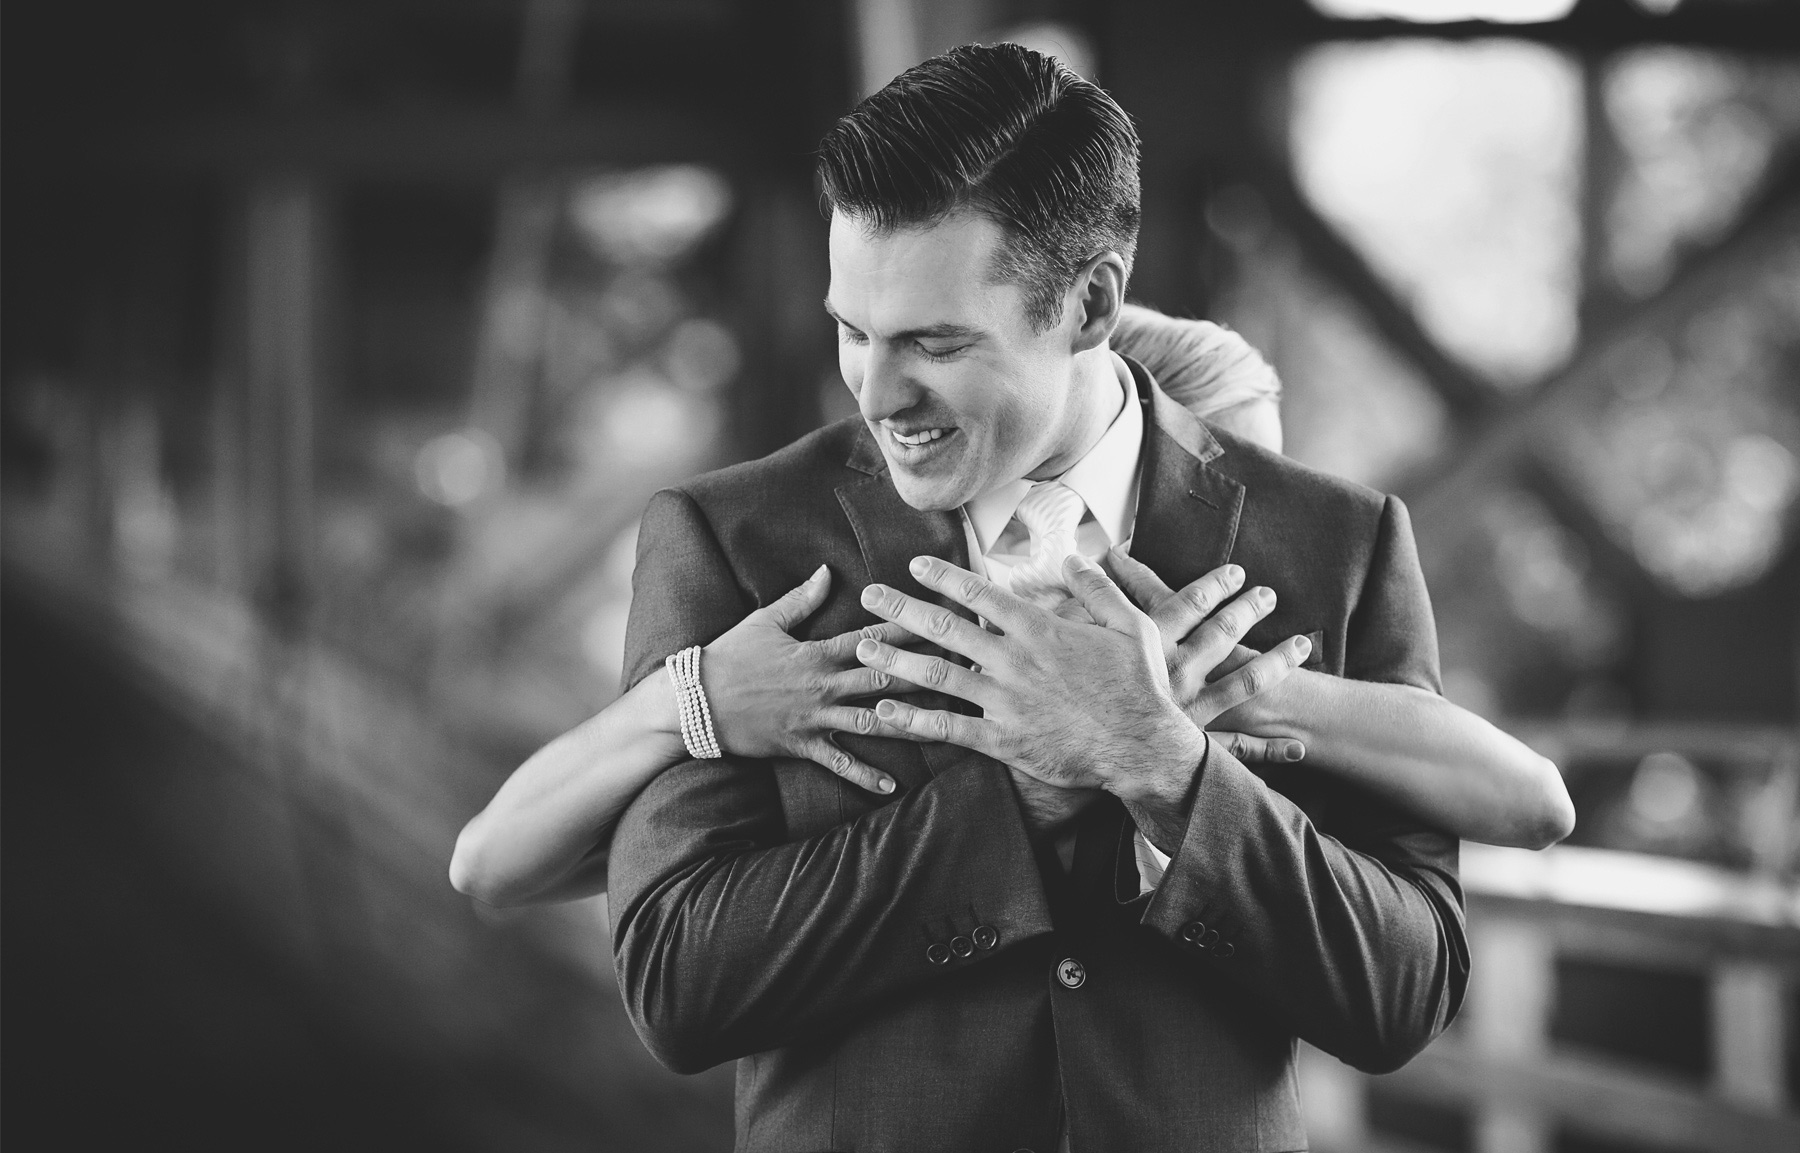 09-Milwaukee-Wisconsin-Wedding-Photographer-by-Andrew-Vick-Photography-Fall-Autumn-Destination-Holton-Bridge-Swing-Park-First-Meeting-Look-Bride-Groom-Embrace-Hug-Black-and-White-Tina-and-Kevin.jpg